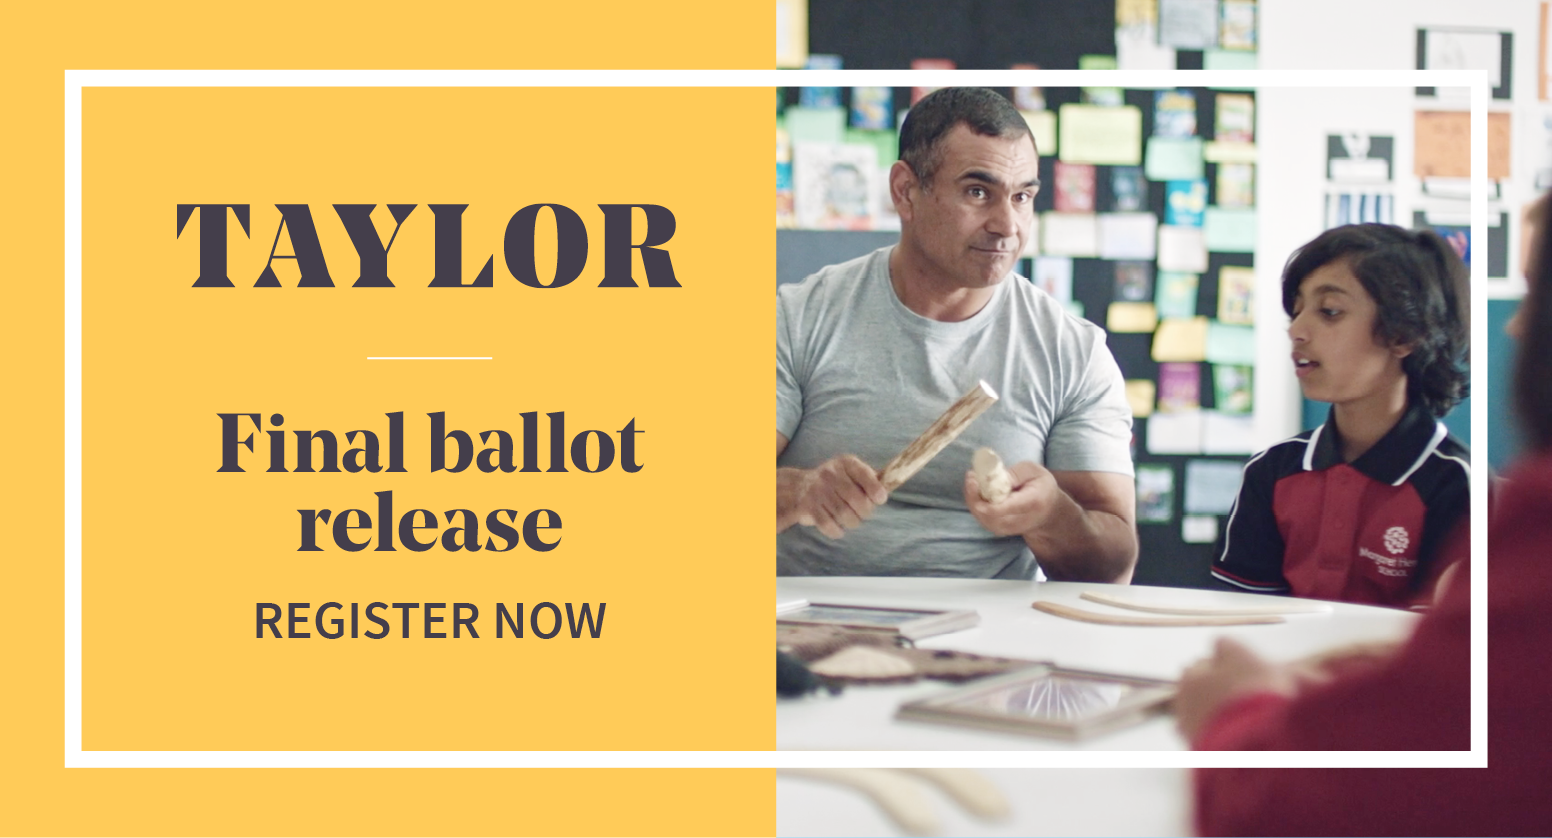 Choose the best block for you in Taylor's final ballot release